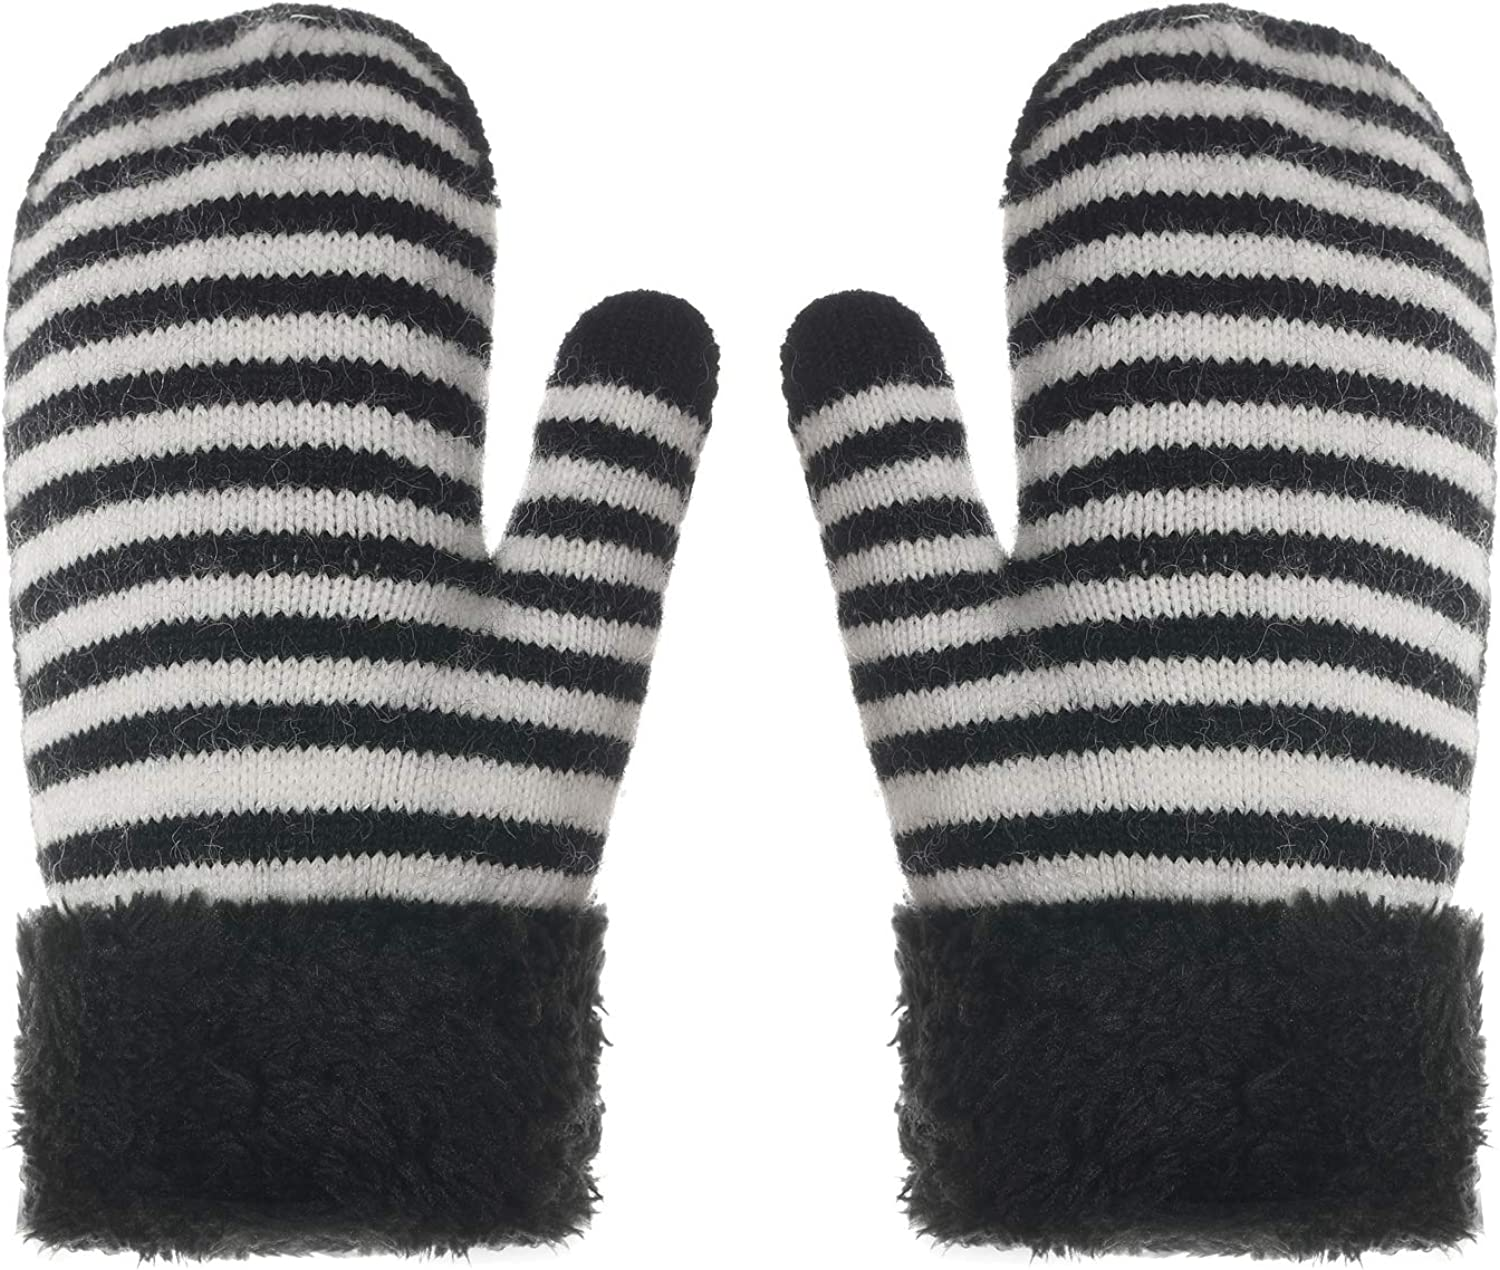 Baby Girl Cute Warm Beanie and Mitten Set with Fluffed Lining